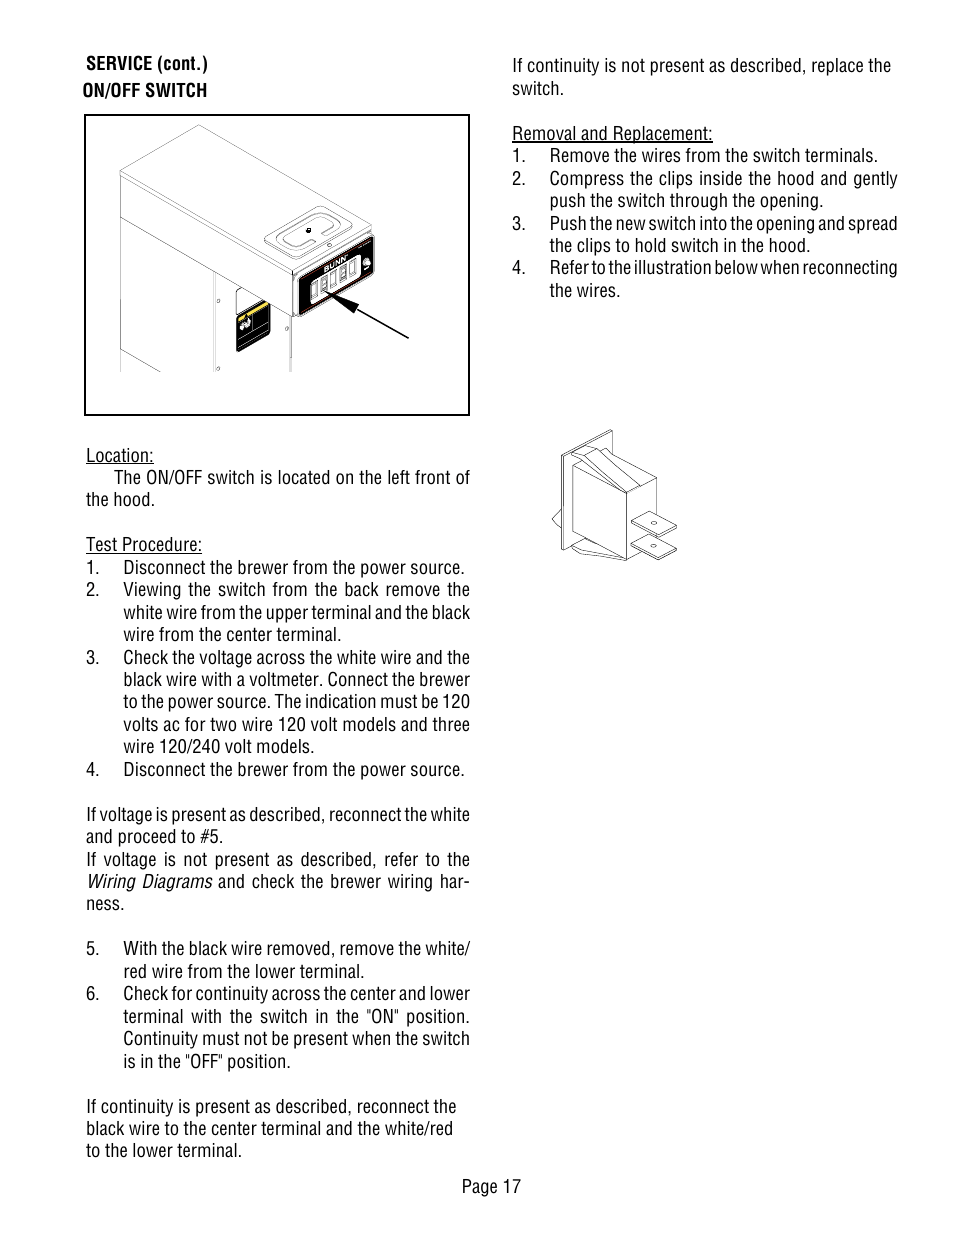 hight resolution of wiring diagrams page 17 service cont on off switch bunn cwt ts user manual page 17 24